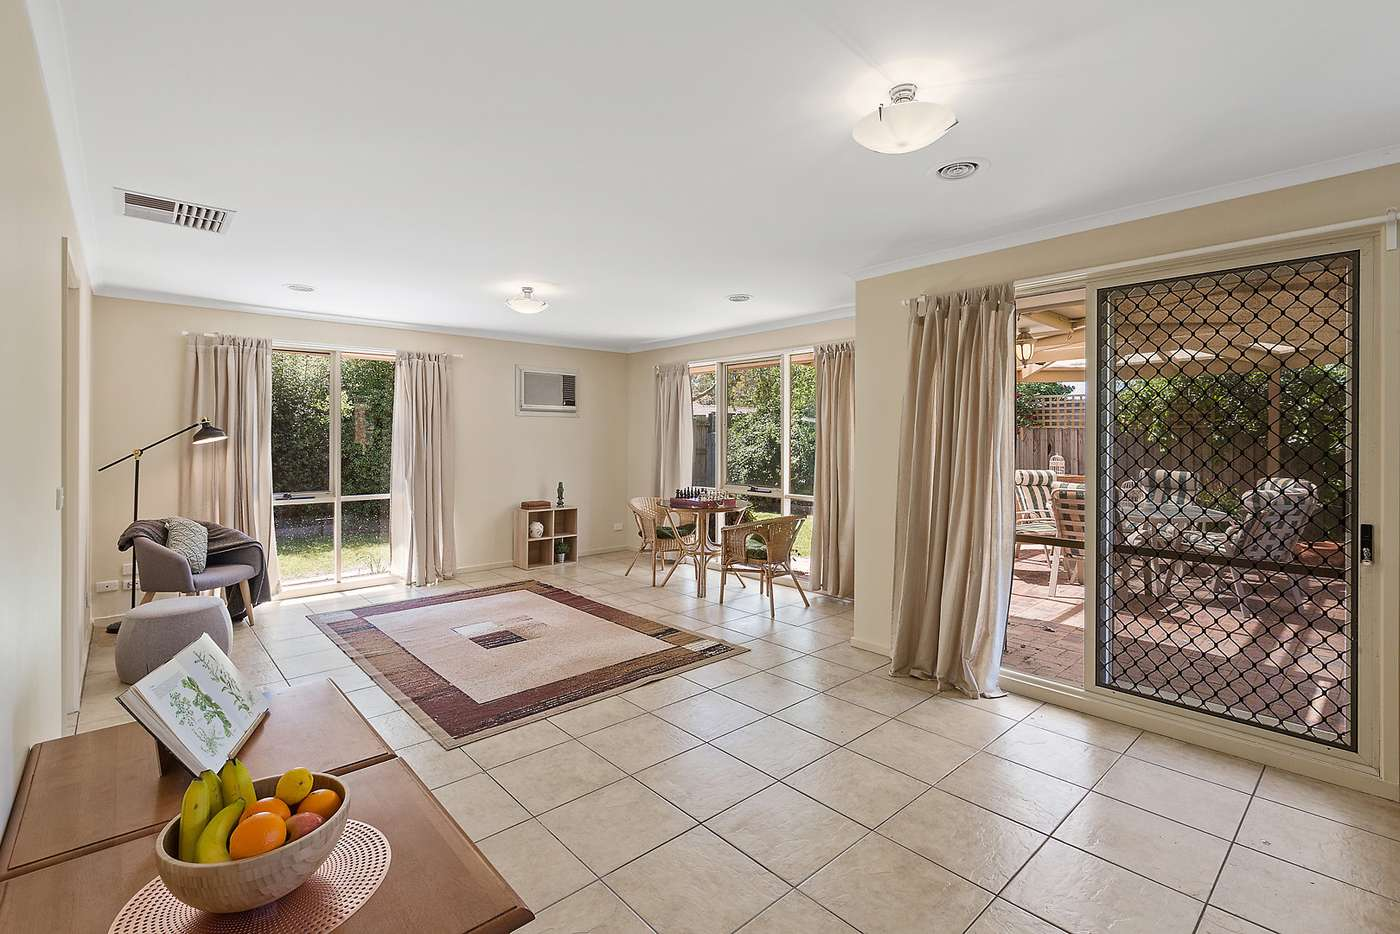 Fifth view of Homely house listing, 14 Wildwood Walk, Croydon South VIC 3136